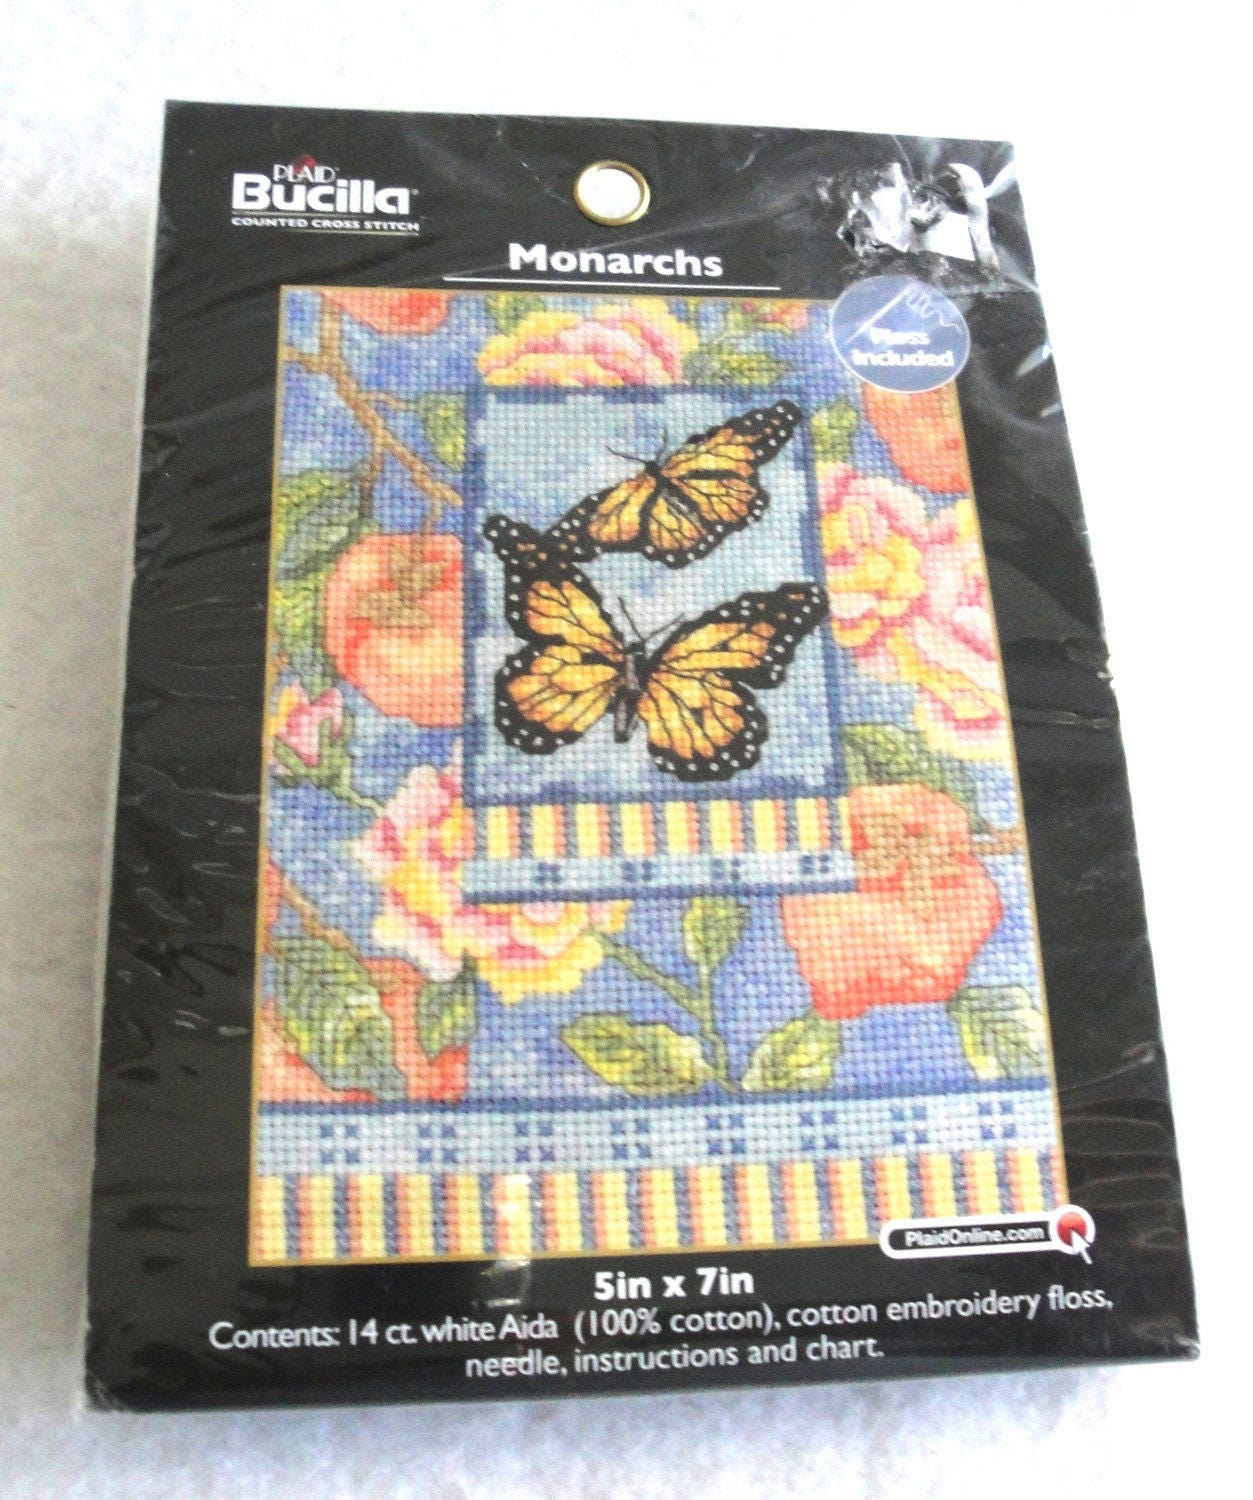 d13170111f9bf Counted Cross Stitch Kit Monarchs Butterflies Kit NIP WM45509 Bucilla Plaid  Small